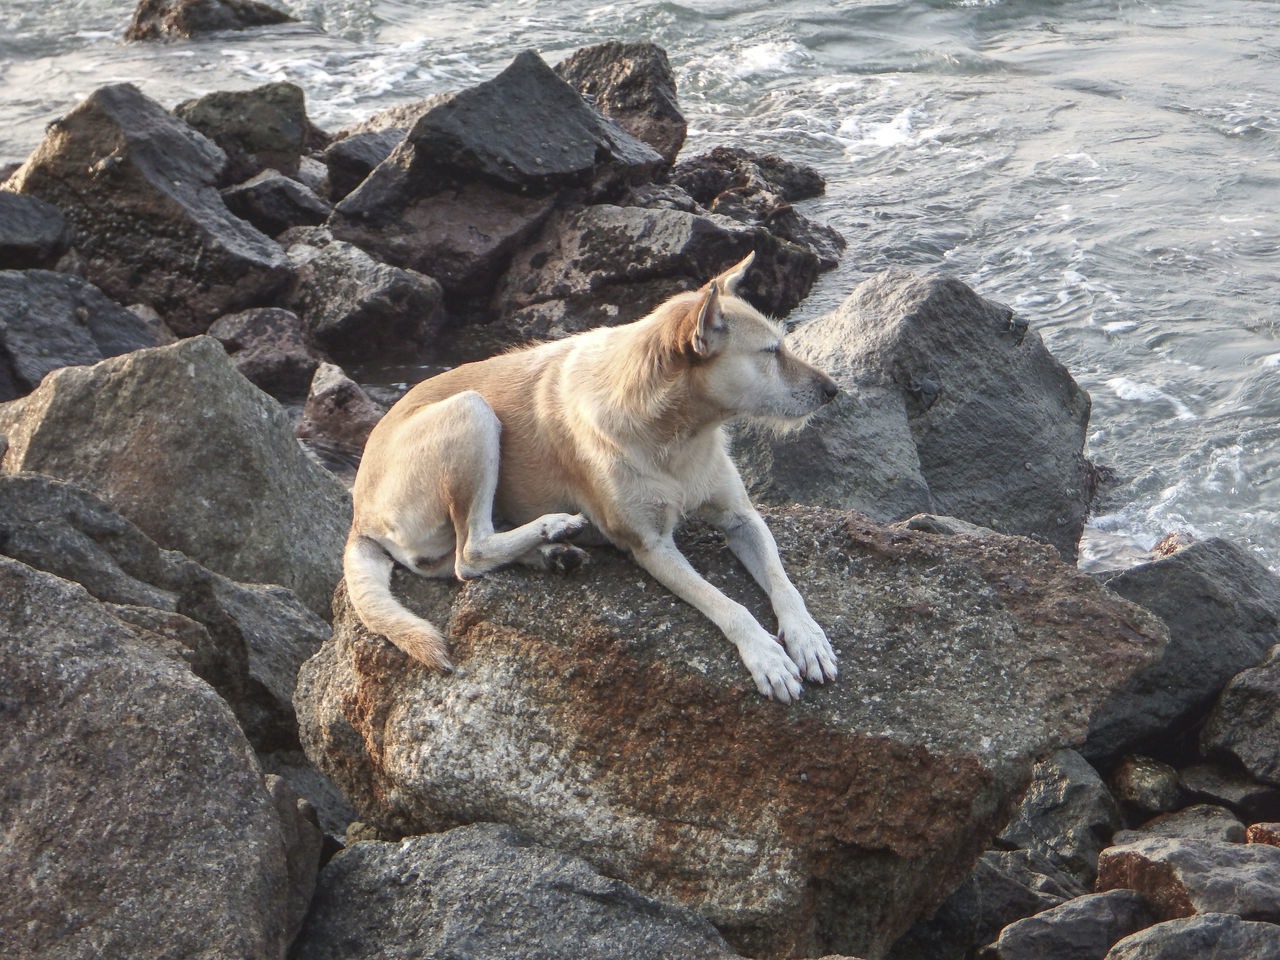 Animal Themes Beauty In Nature Dog Indian Ocean Jungle Beach Nature No People Old Dog Outdoors Relaxation Rock Rock - Object Rock Formation Rocky Beach Seaside Sri Lanka Stones